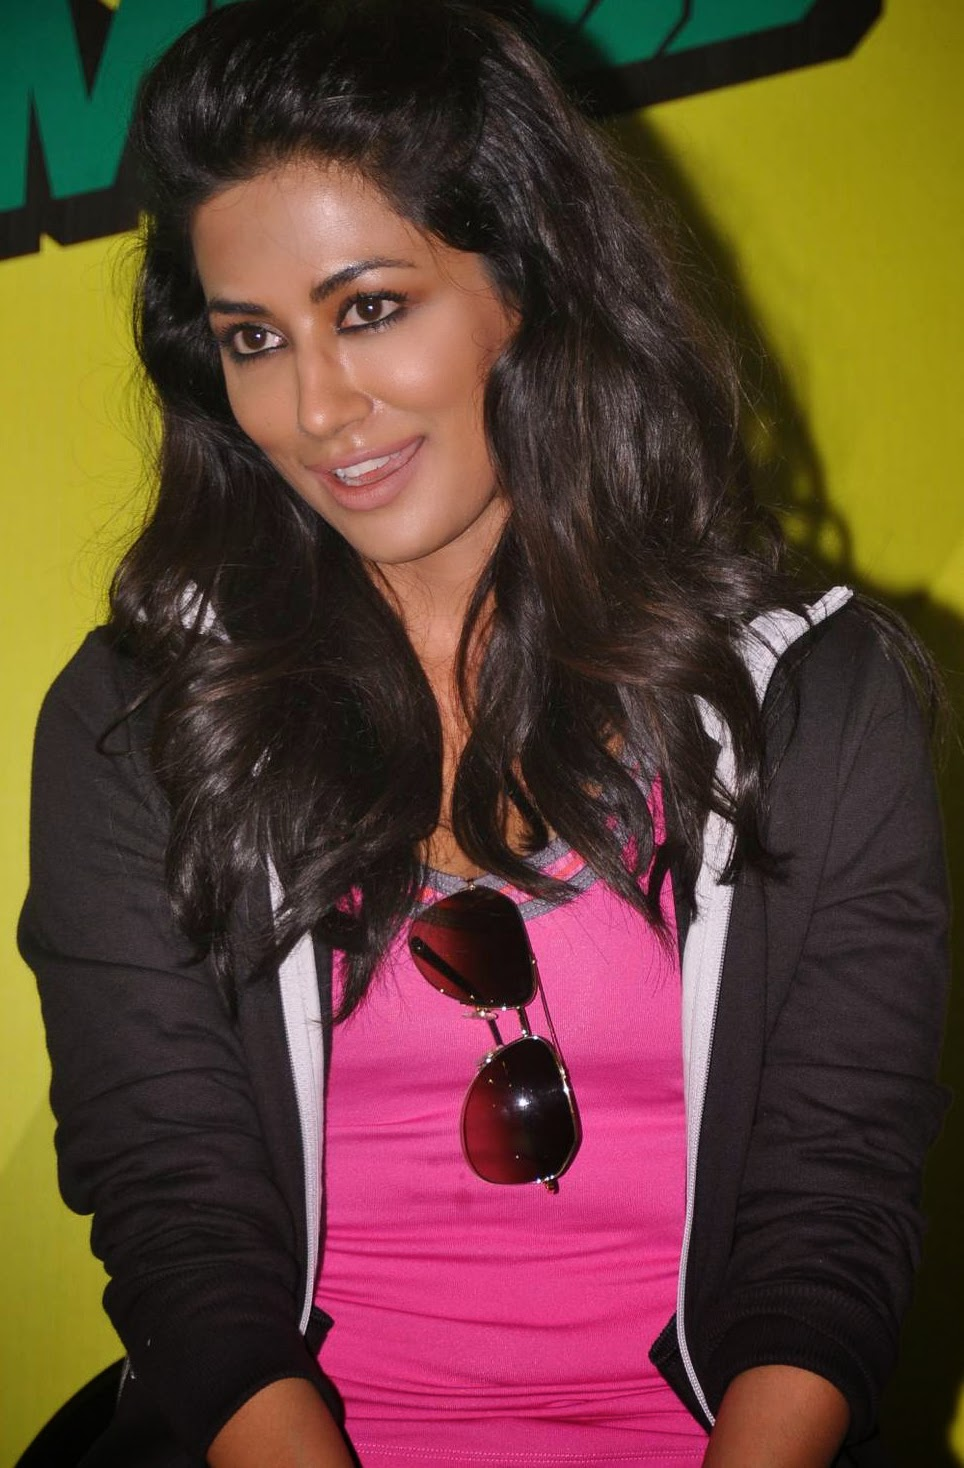 whcb: chitrangada singh hot wallpapers pictures